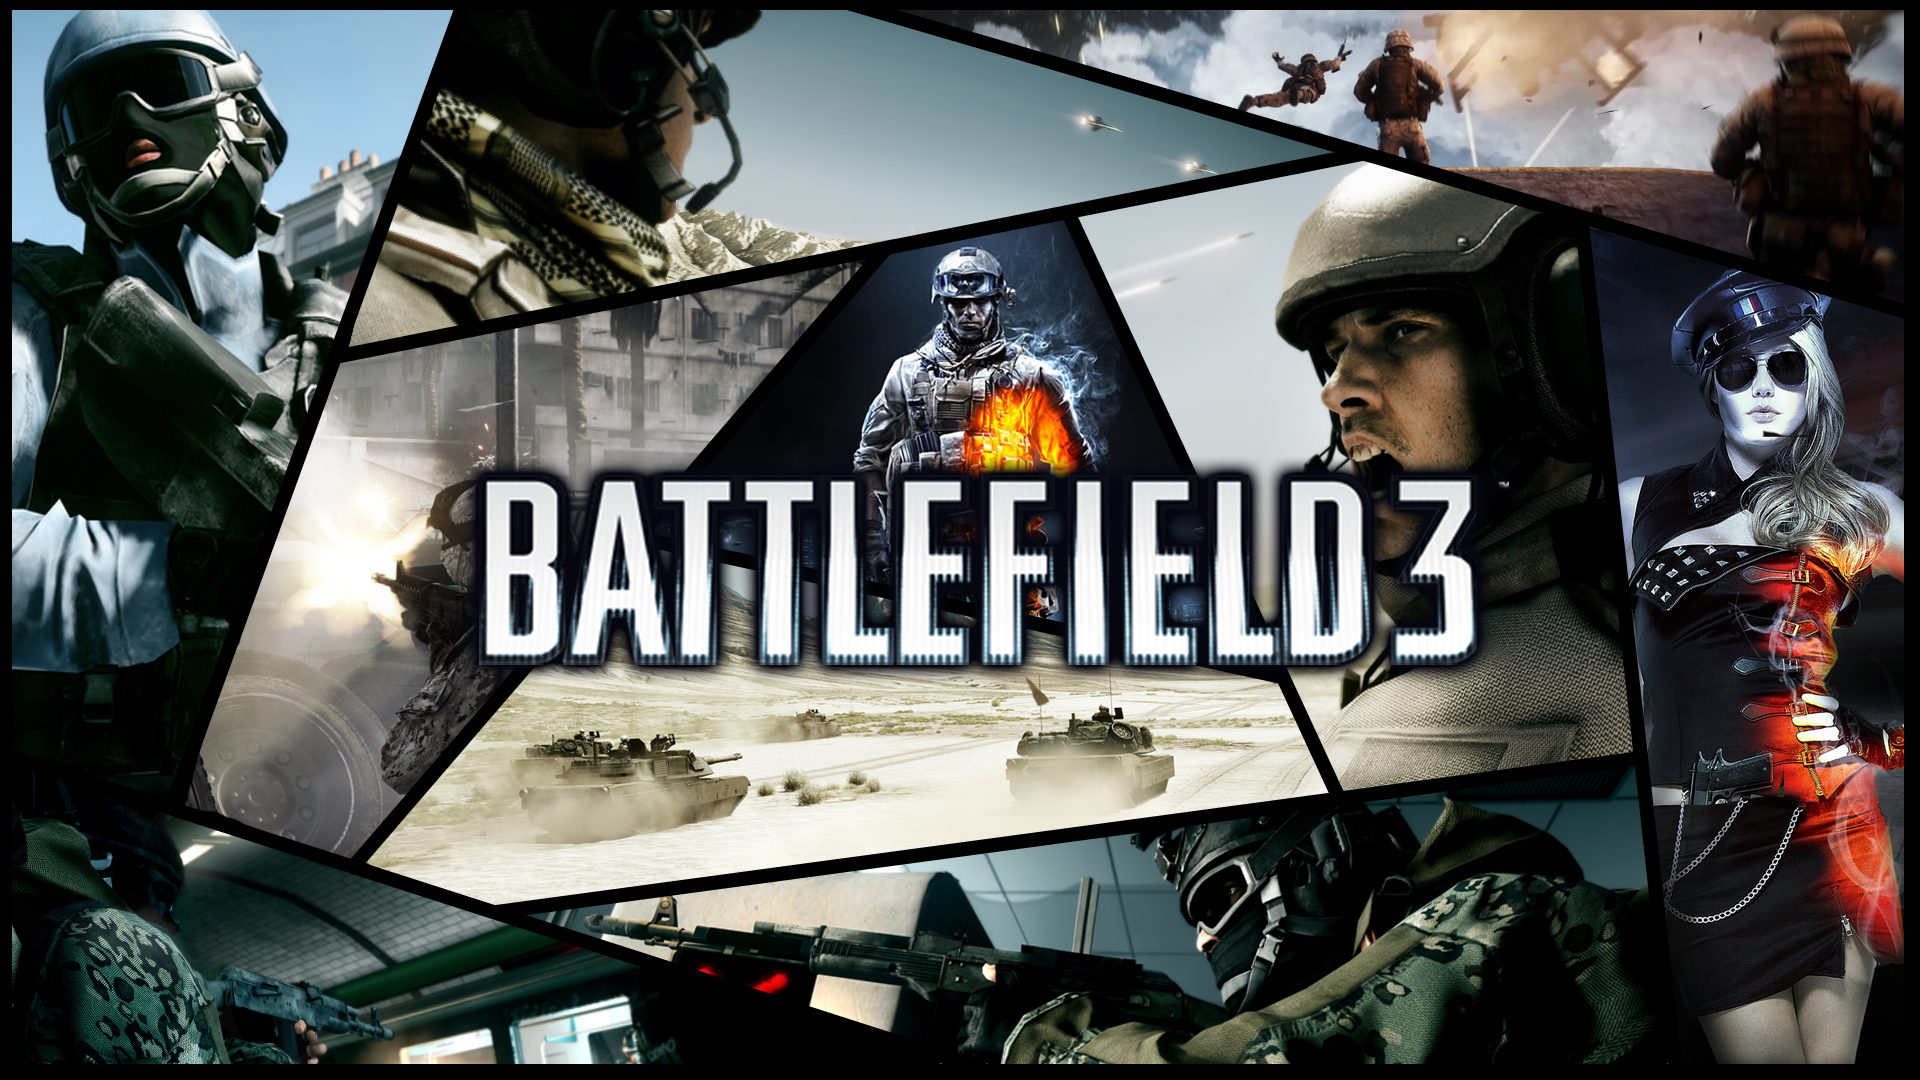 Battlefield 3 SplitScreen by DeCLaRcK